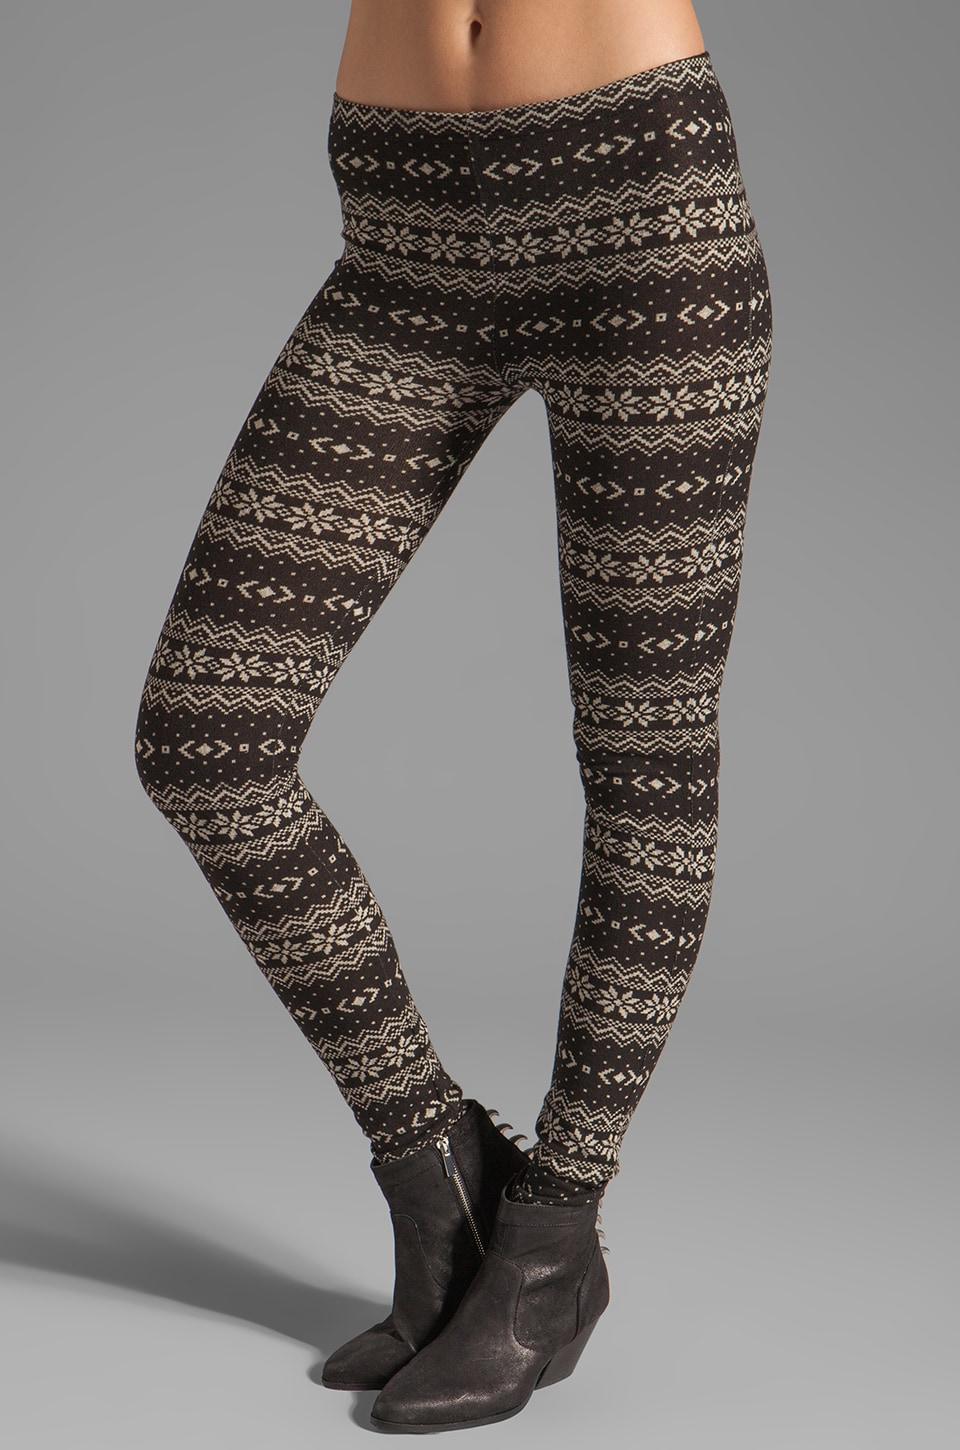 Plush Fair Isle Legging in Black